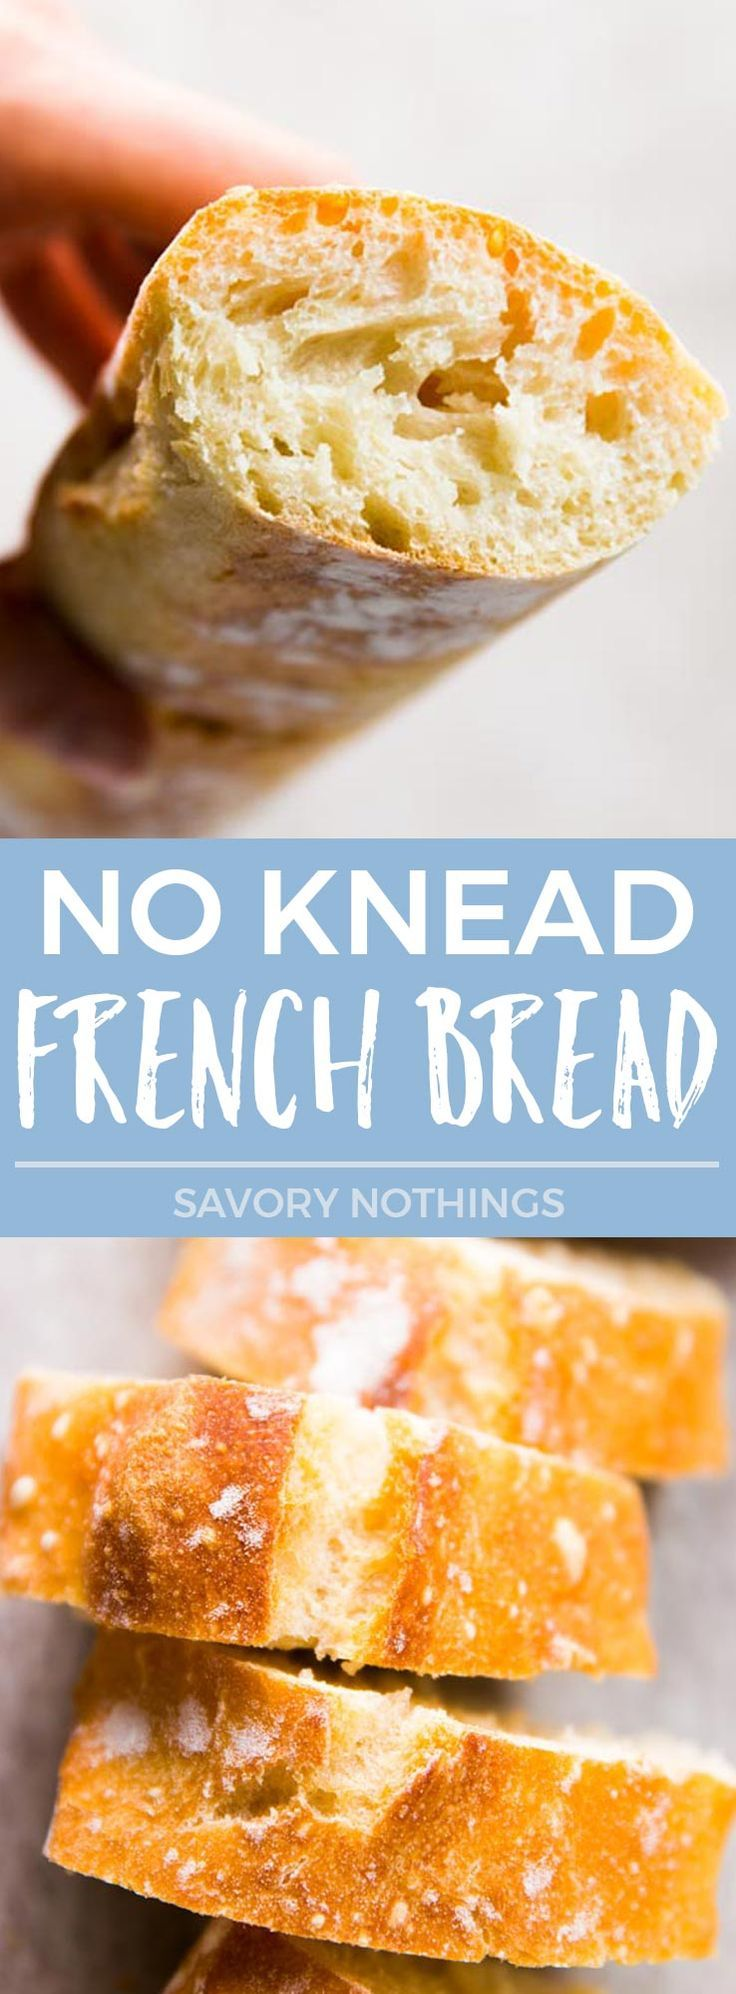 Now you can make crusty, artisan-like HOMEMADE French Bread from scratch with barely any effort! This is one of the best lazy cook's/baker's hack I've ever found - no kneading, no shaping, no overnight rise, and it comes out perfect every time with just 5 MINUTES PREP and about 10 minutes active time in total! | #baking #French #breadmaking #bread #recipes #fromscratch #brunch #mothersday